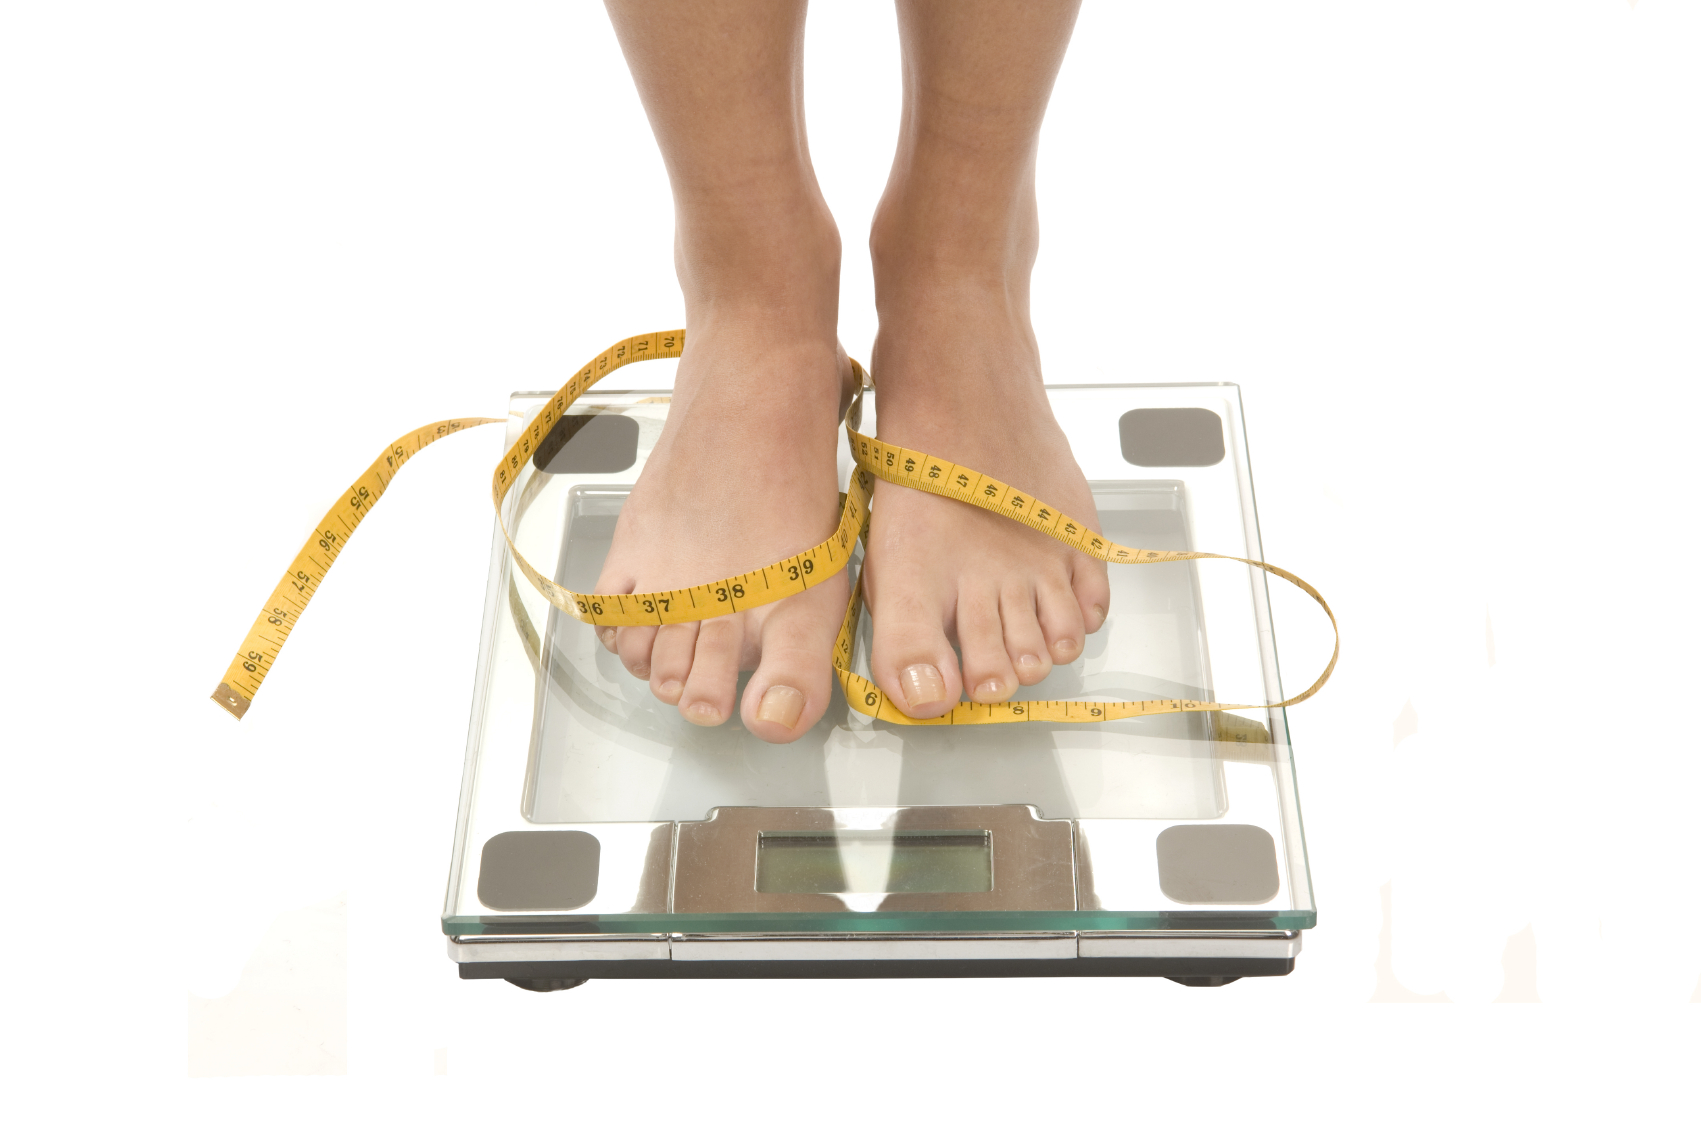 Weightloss scale